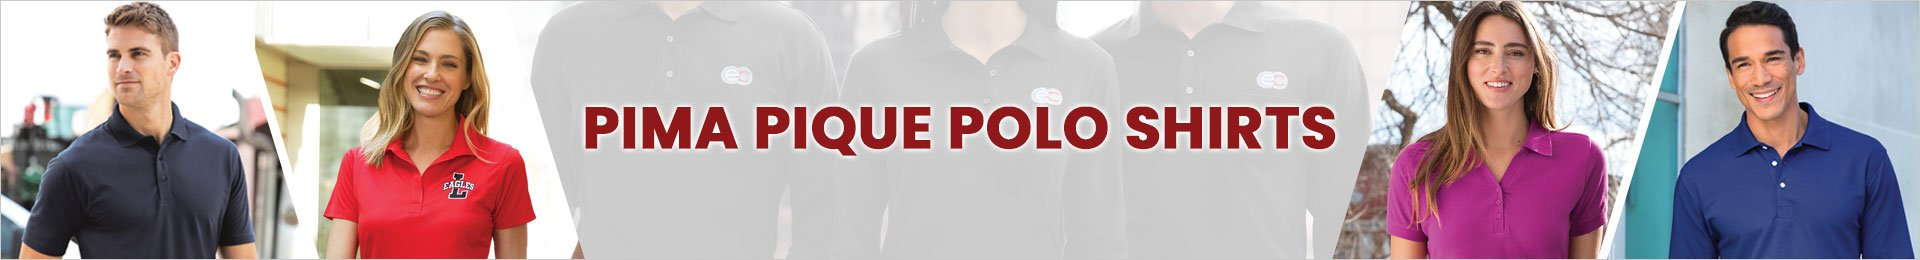 Wholesale Pima Pique Polo Shirts